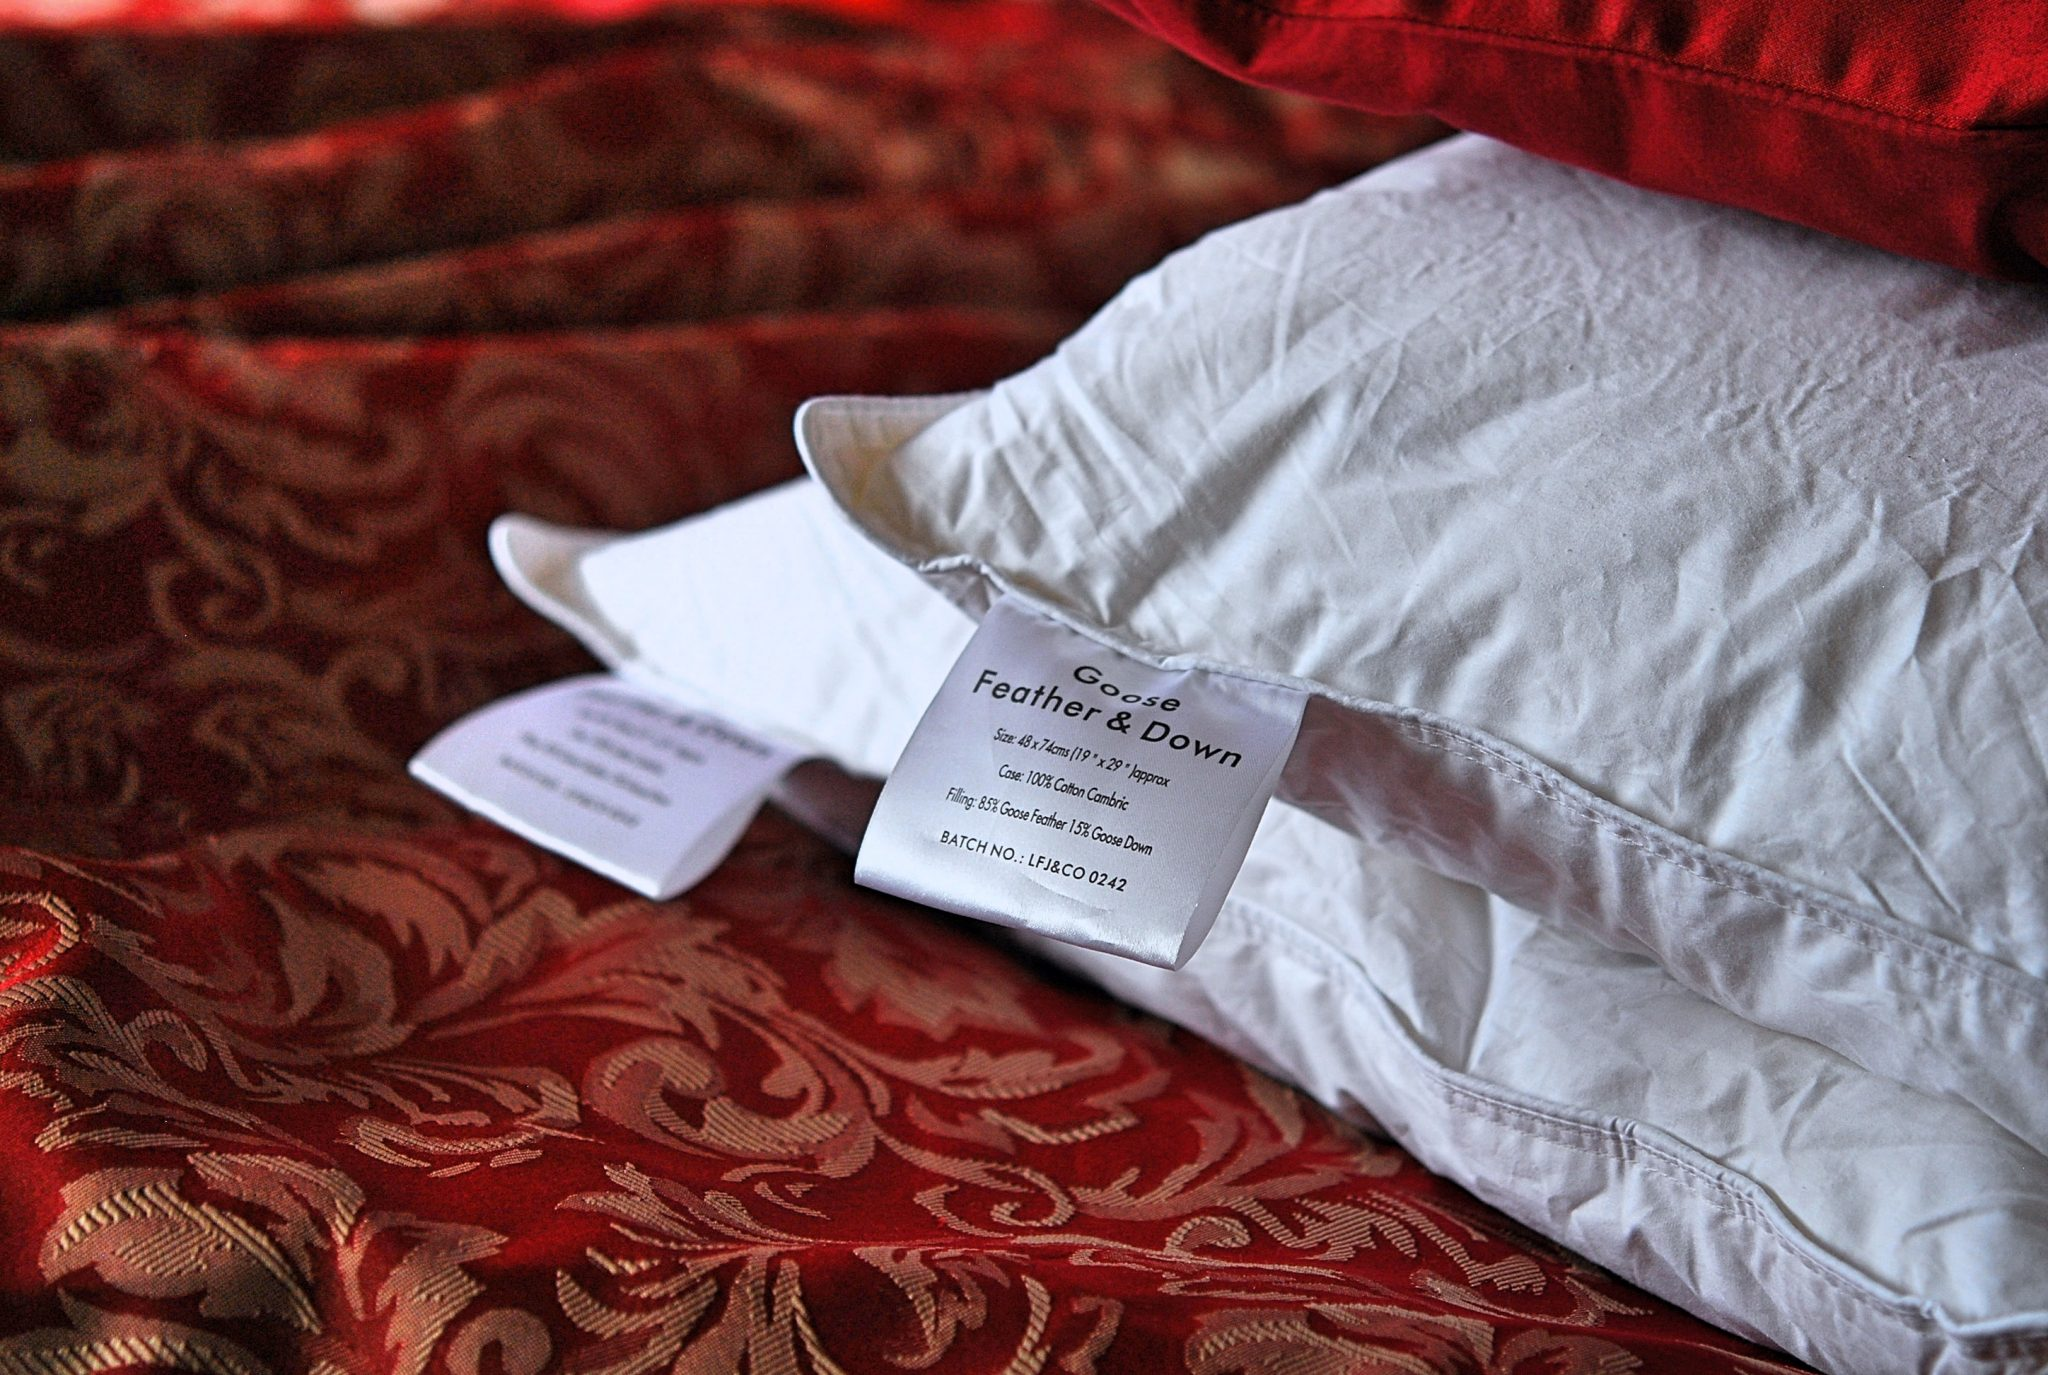 Feather Goose Down Luxury Pillow - The Towel Shop Review | Your Food Fantasy